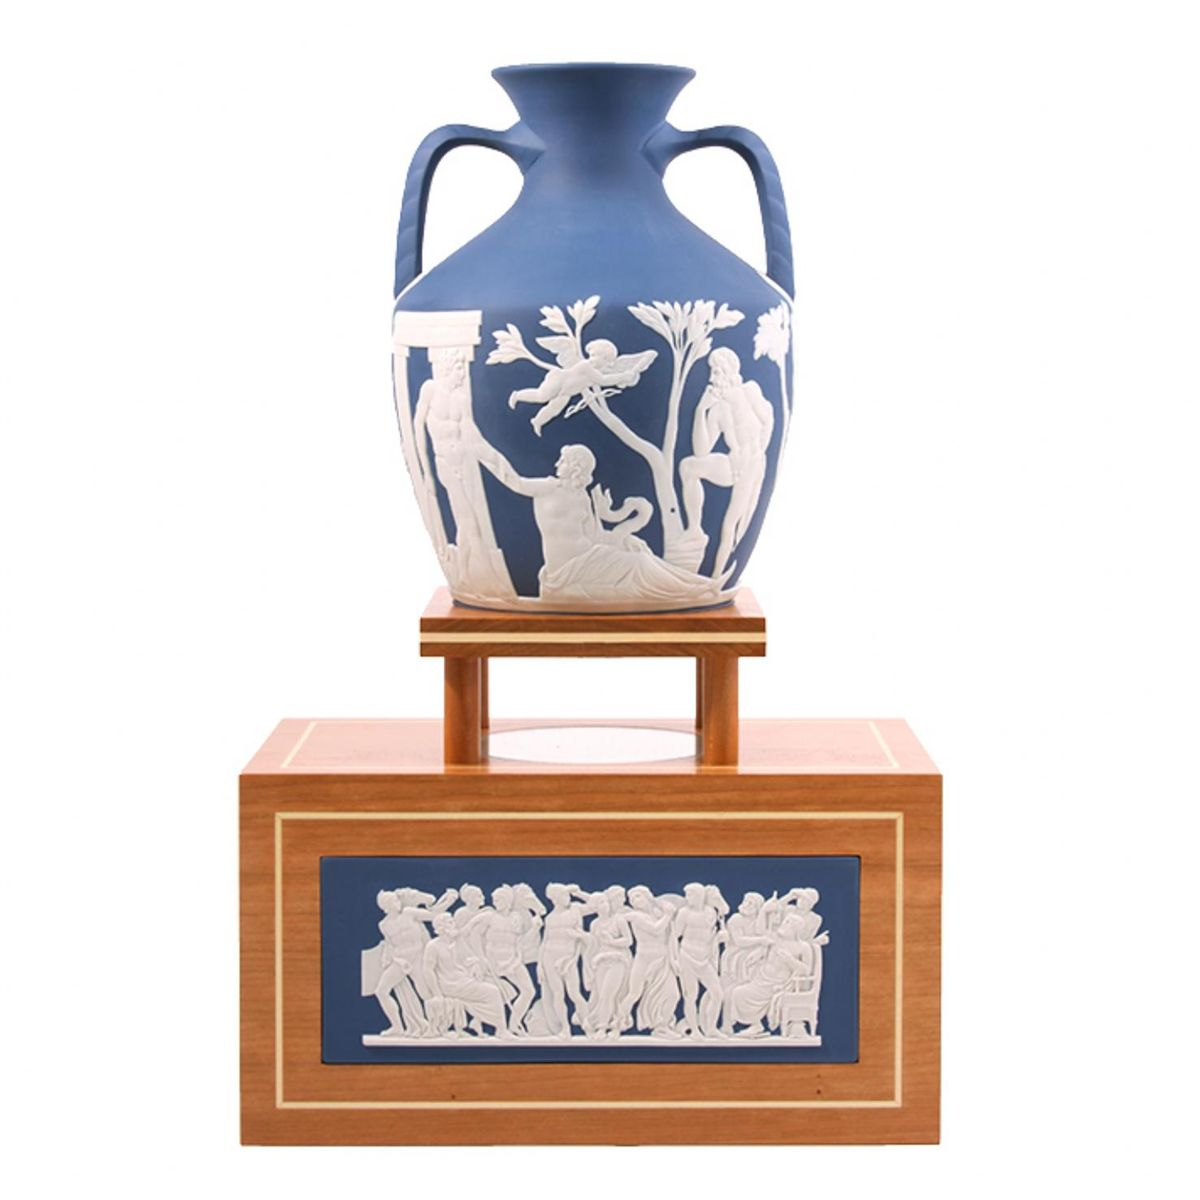 250th prestige collection wedgwood portland vase with stand ed1552 image 1 250th prestige collection wedgwood portland vase with stand ed1552 reviewsmspy